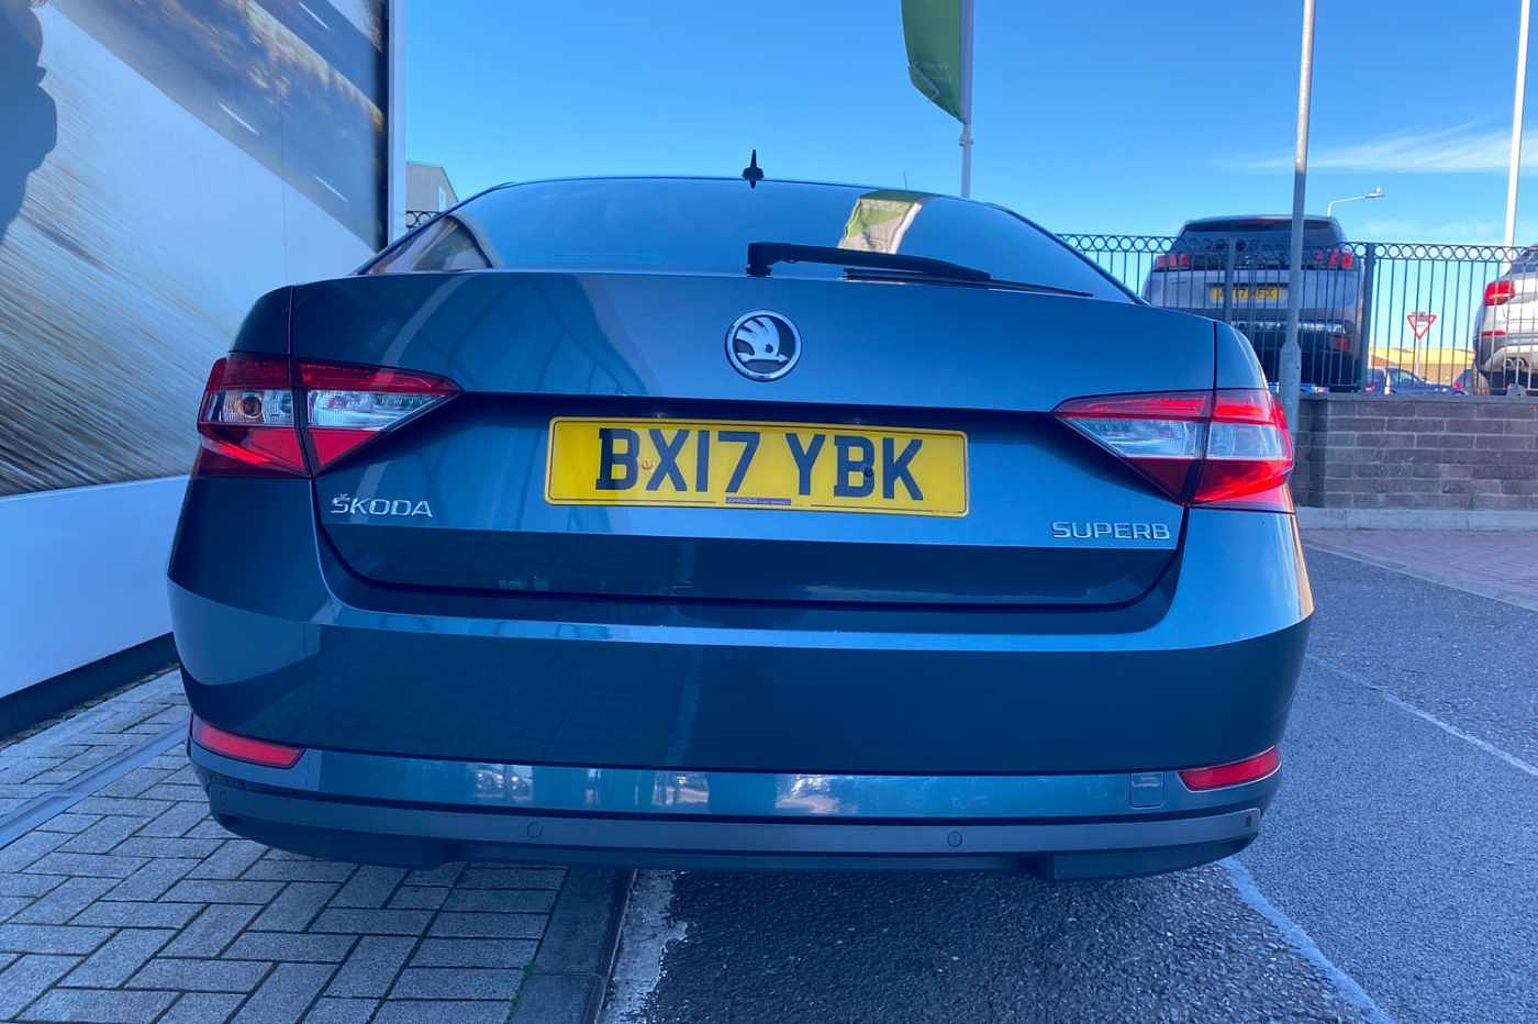 SKODA Superb 2.0 TDI (150PS) SE Business DSG Hatchback